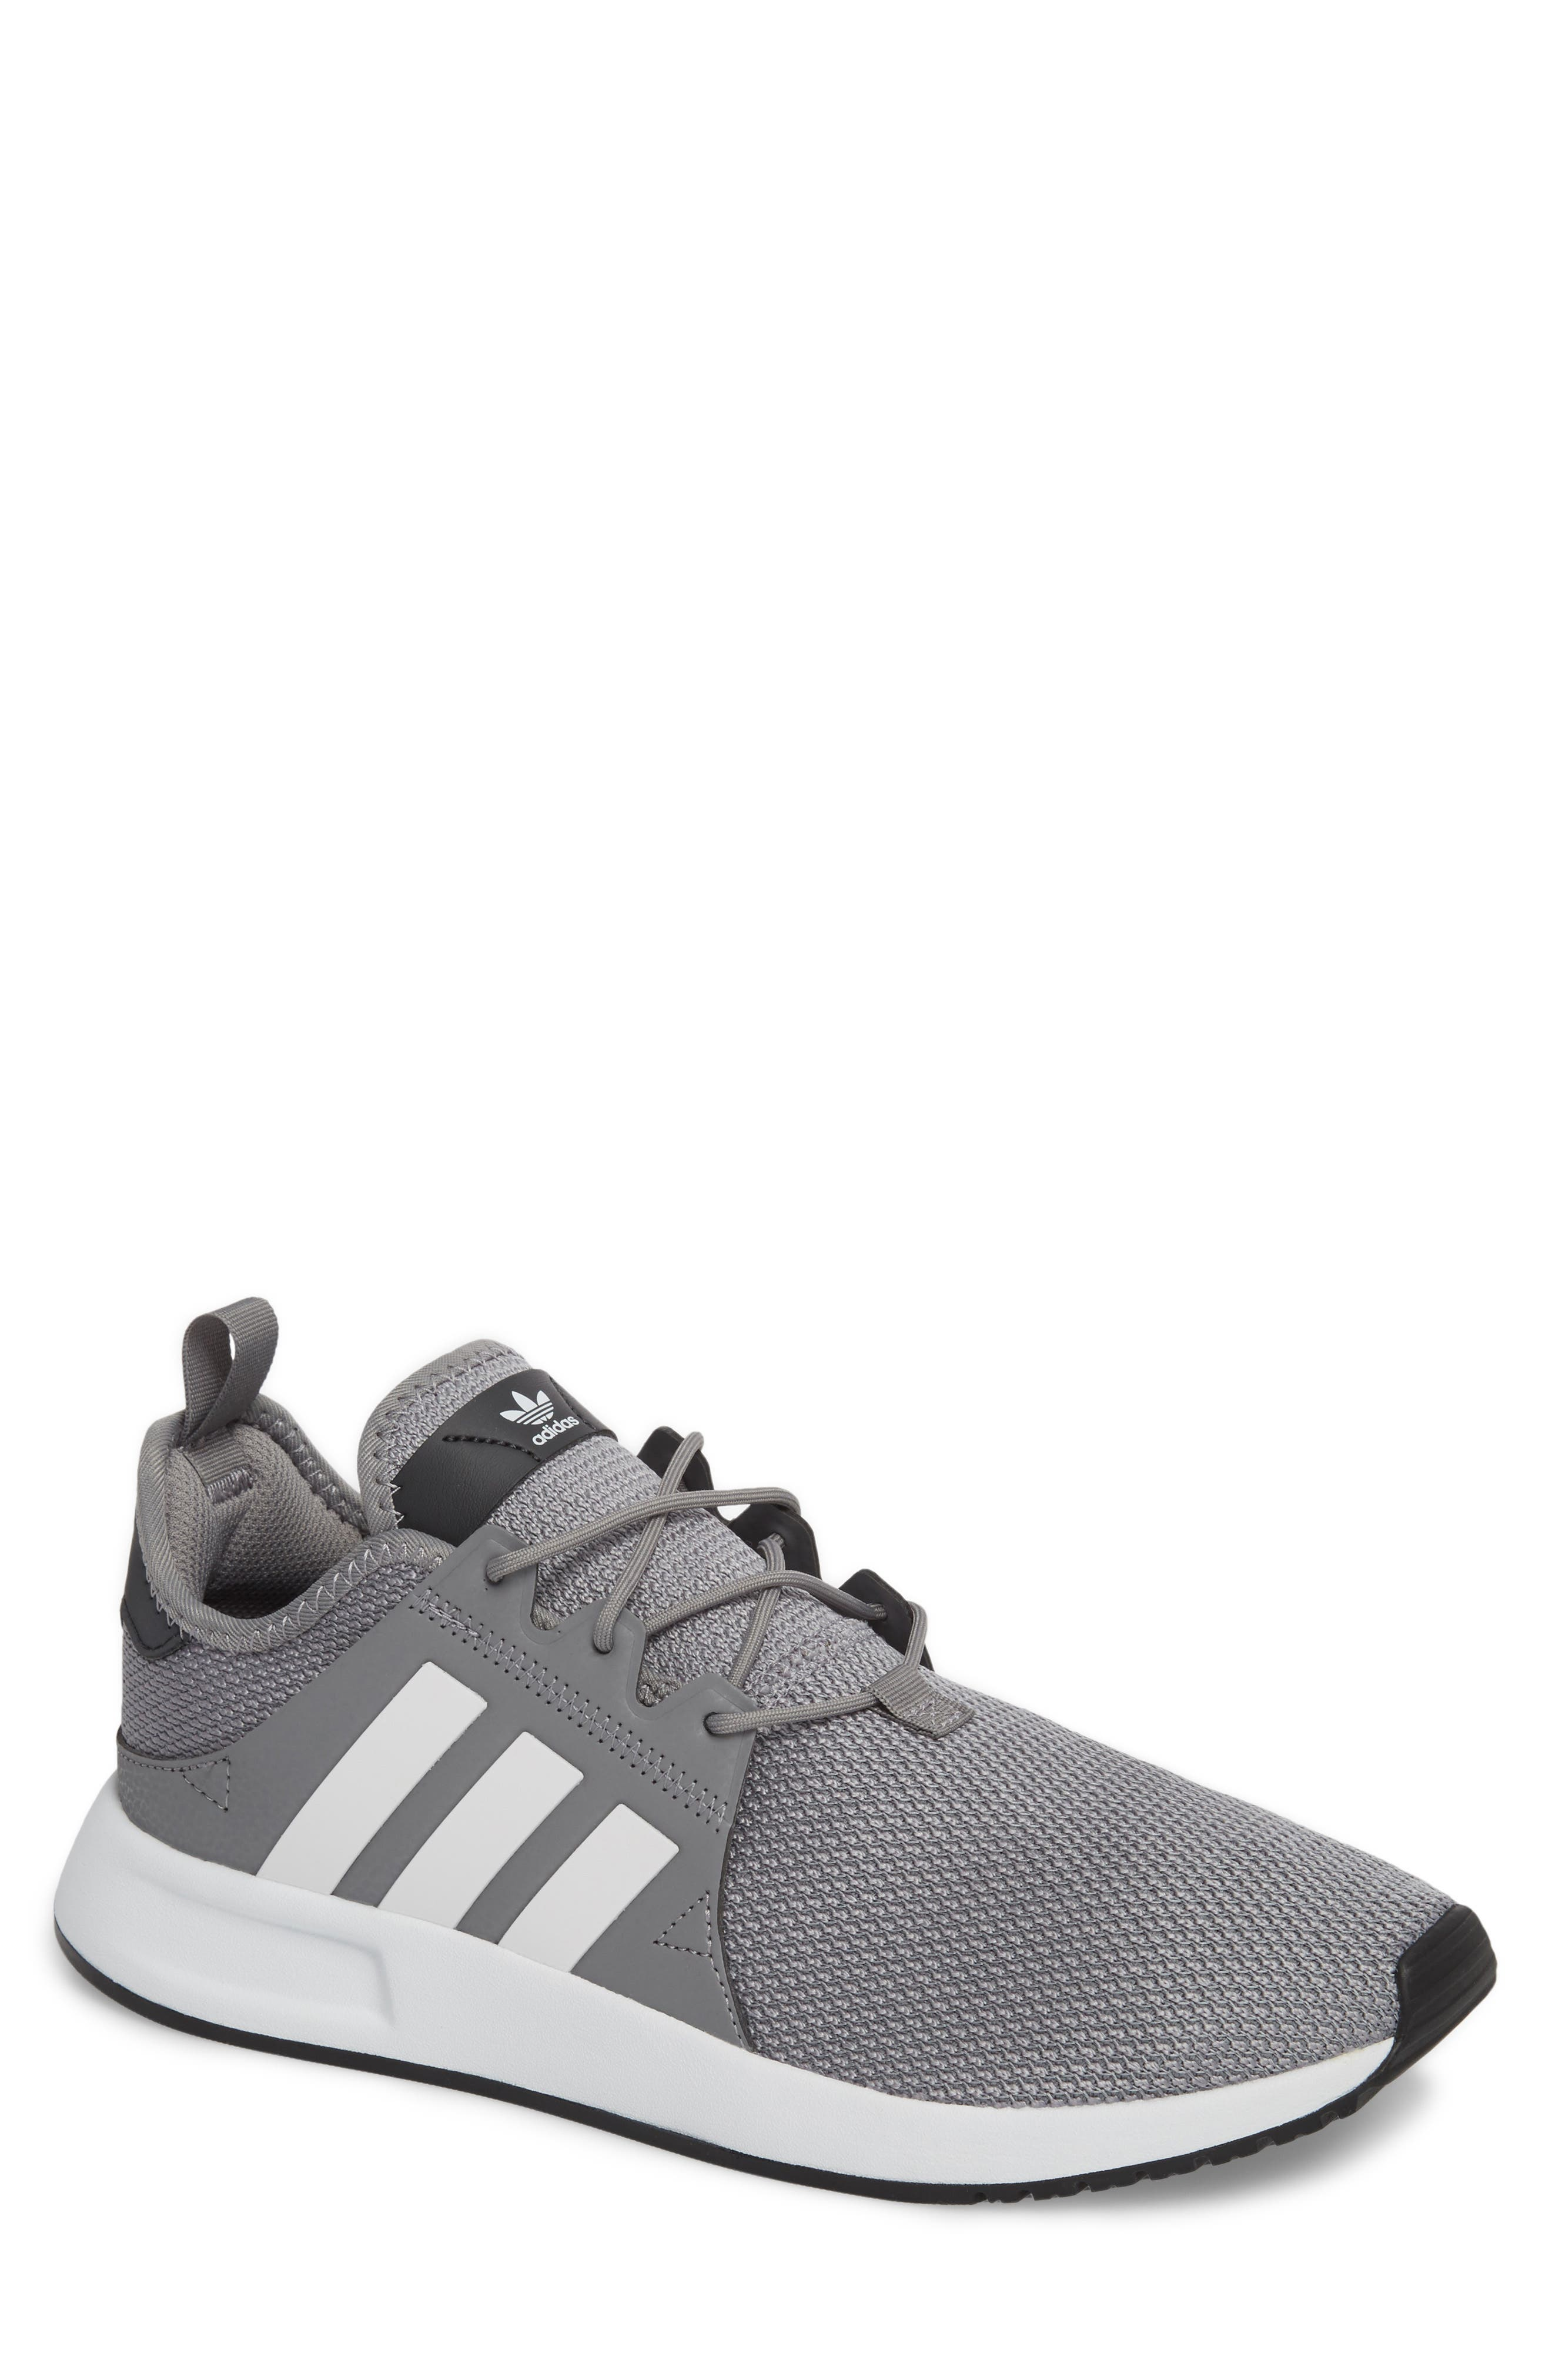 X_PLR Sneaker,                         Main,                         color, Grey/ White/ Carbon